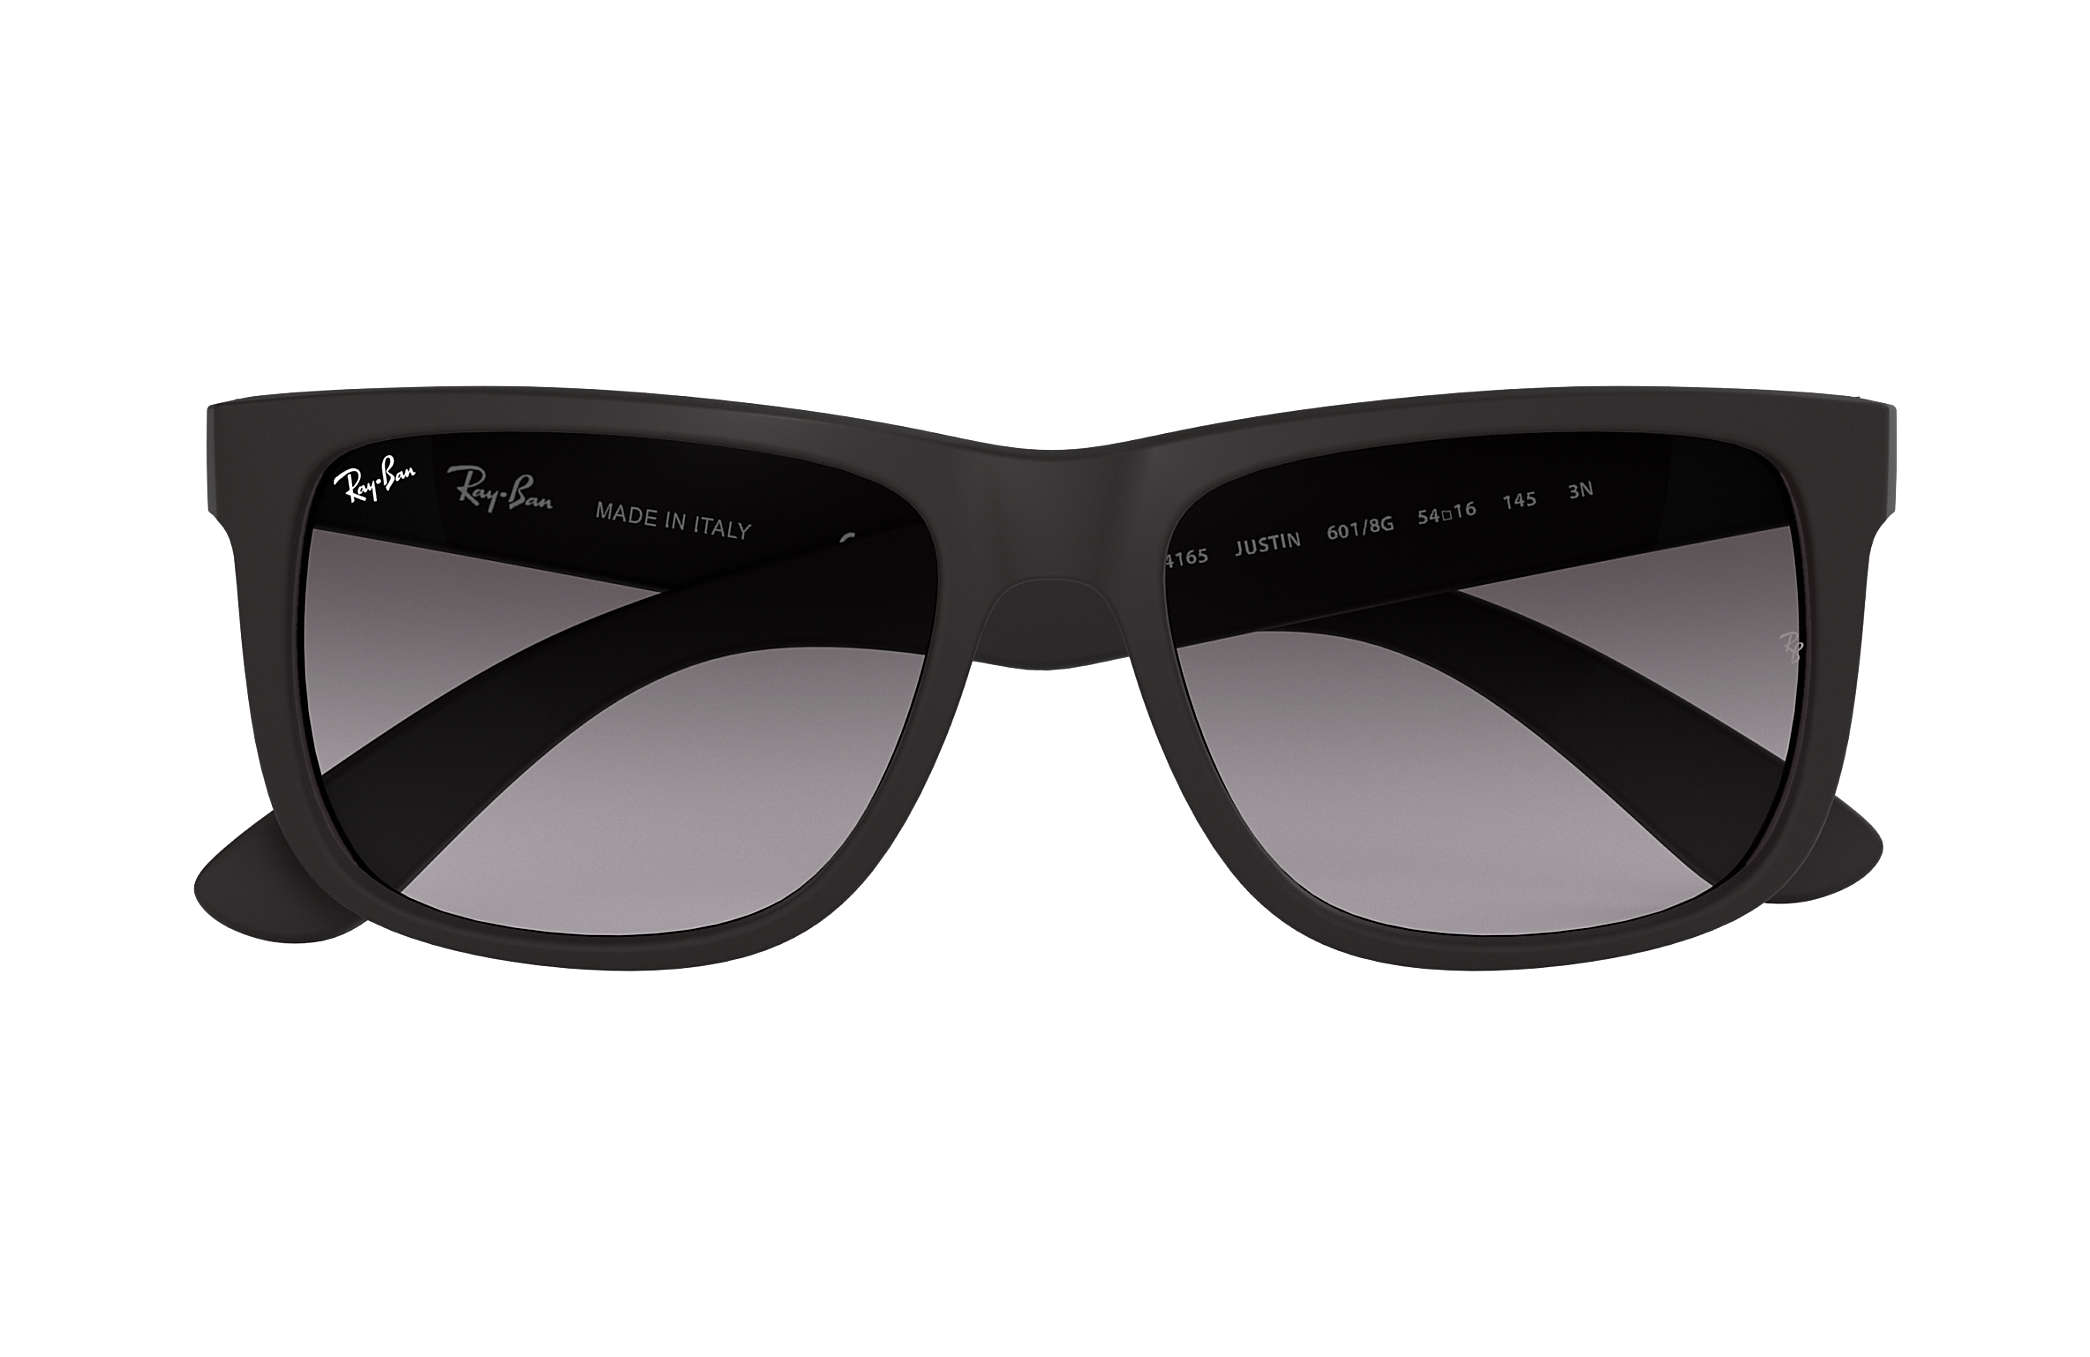 0f496767ab6 Ray-Ban Justin Classic RB4165 Black - Nylon - Grey Lenses ...